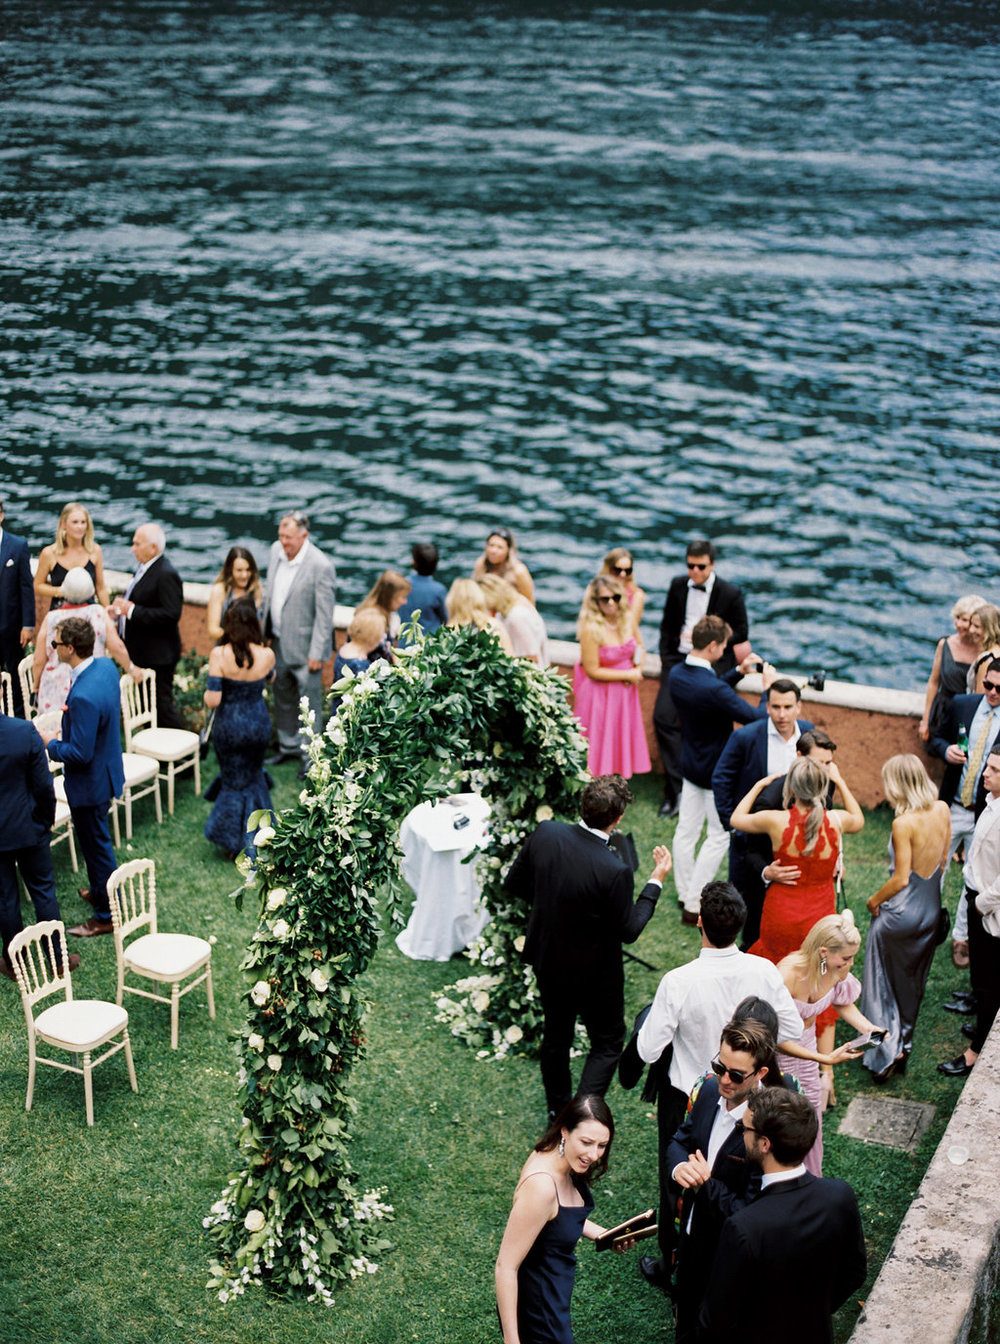 LakeComoVillaReginaTeodalindaWeddingKatieGrantPhoto(44of202).jpg